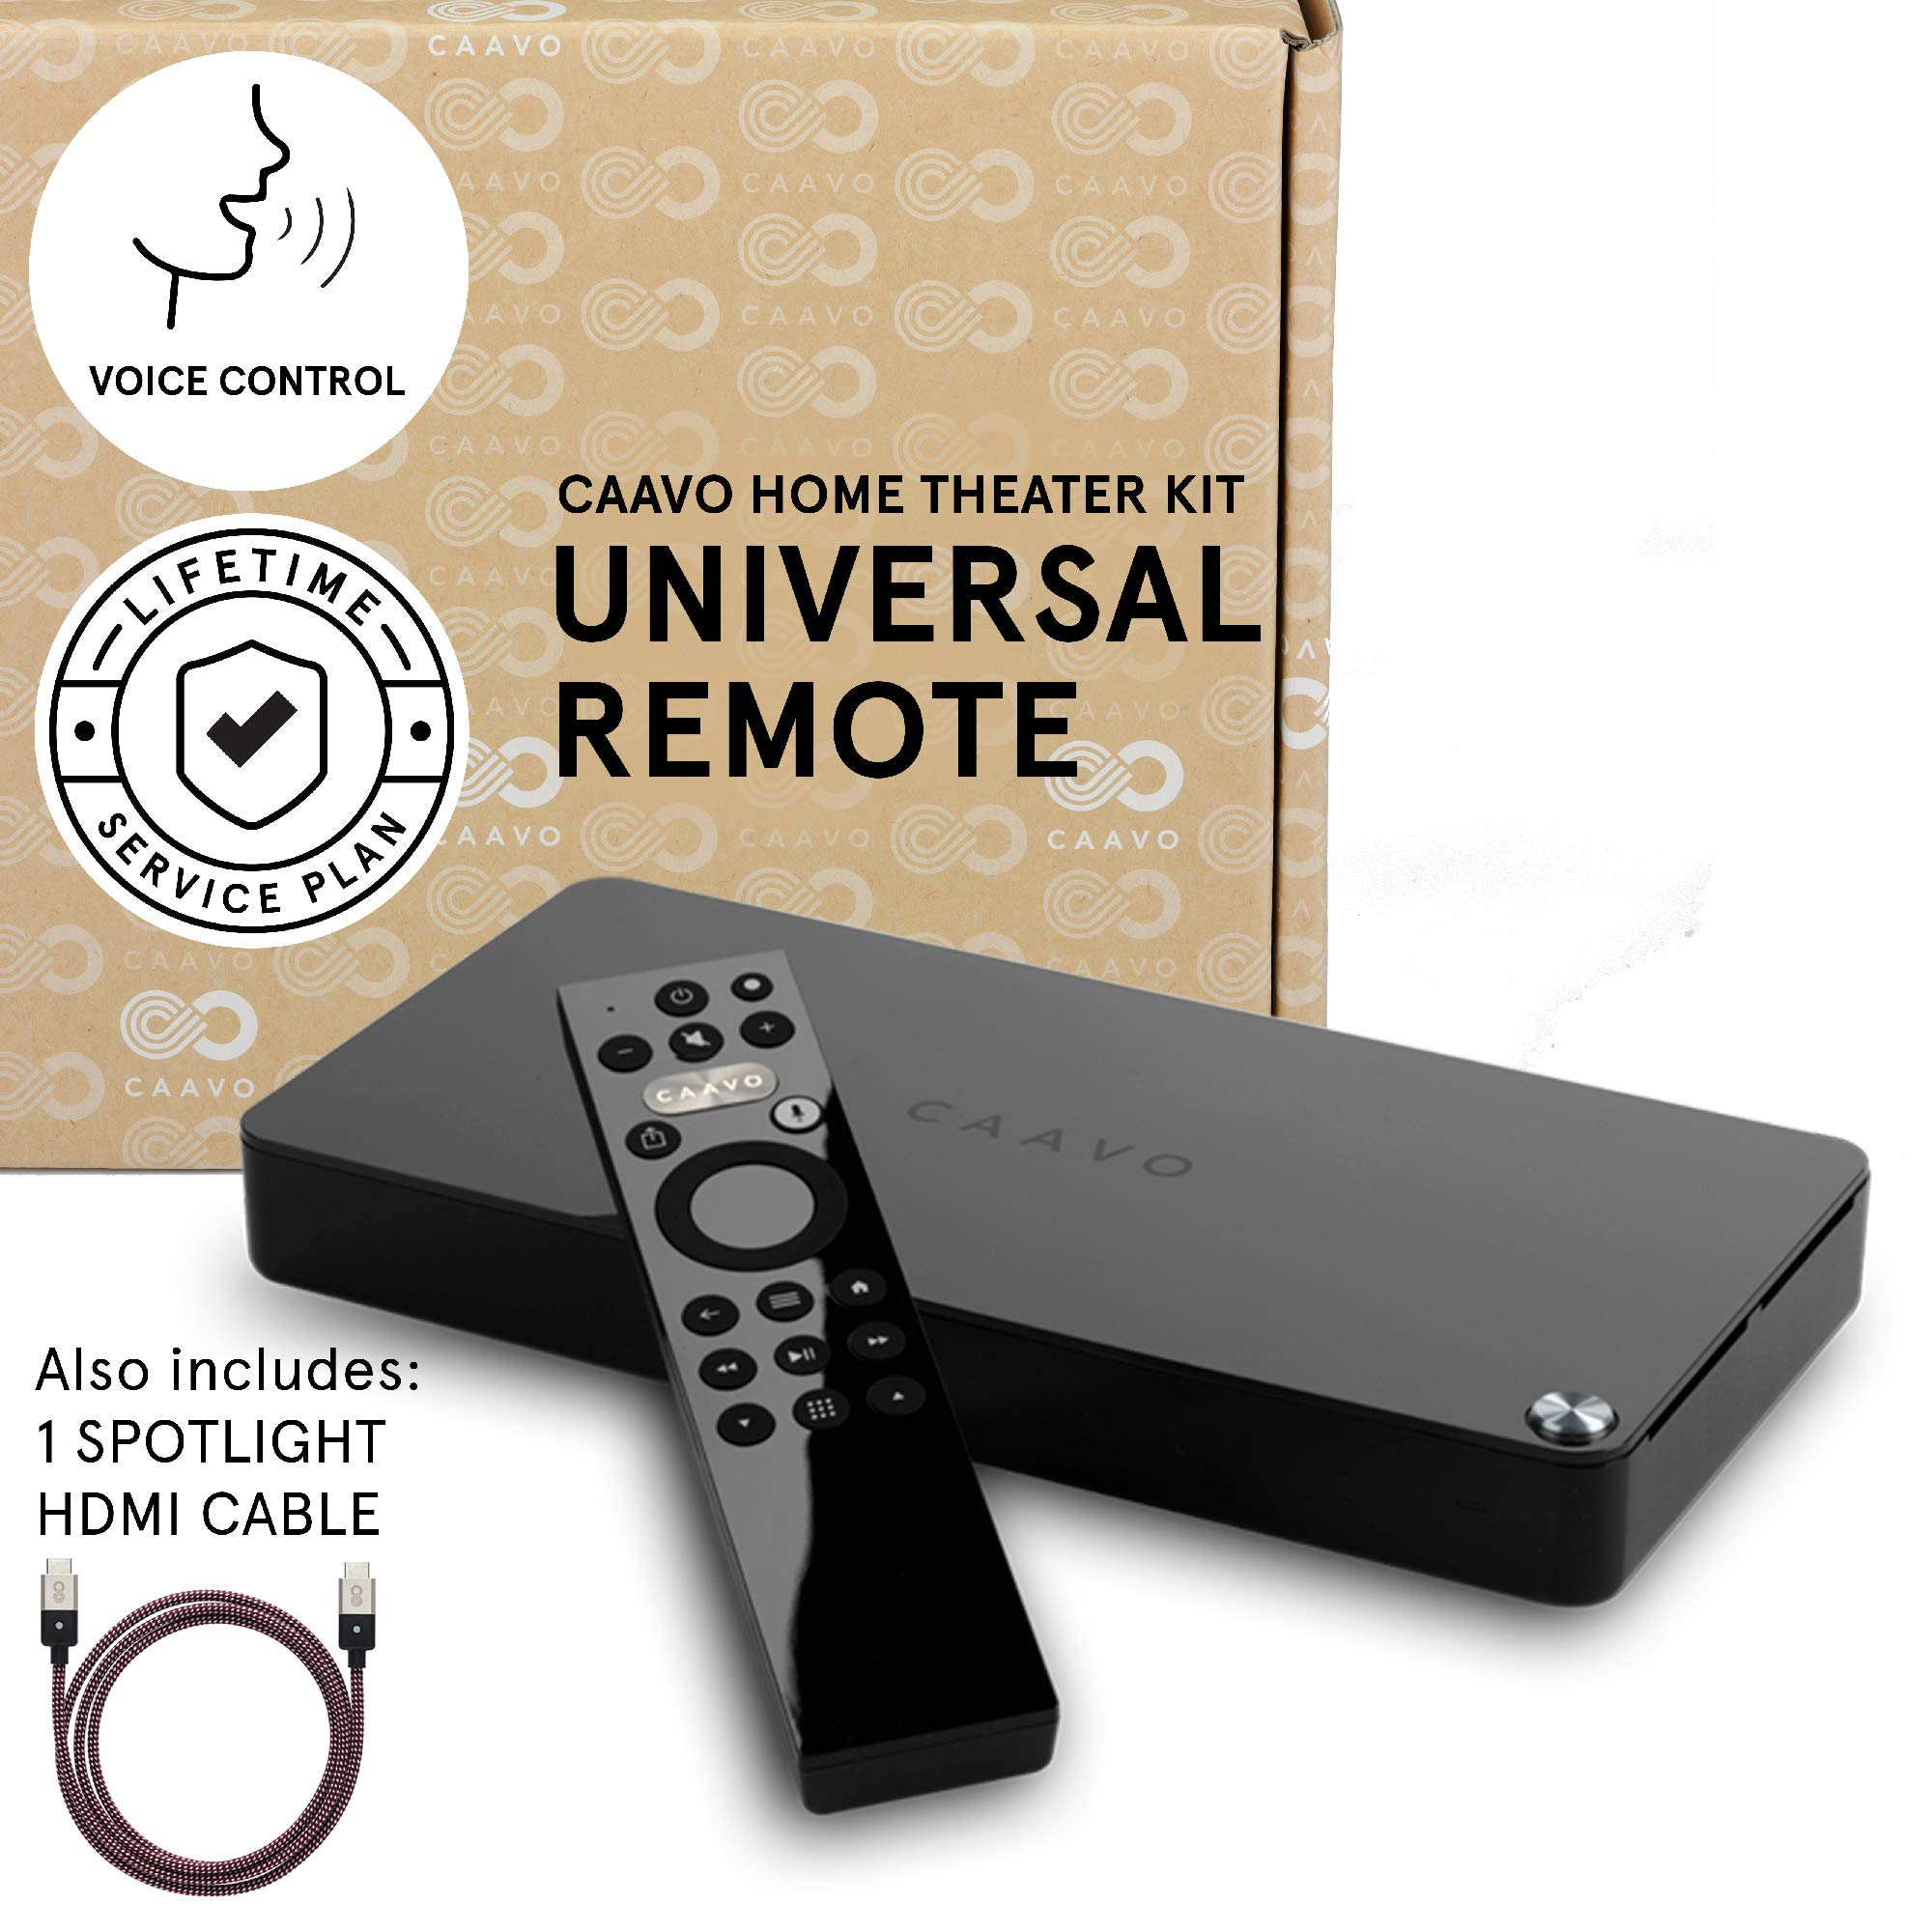 Caavo Control Center PLUS LIFETIME PLAN, Universal Remote Home Theater Hub with Voice Control works with Roku, Apple TV, nVidia Shield, Streaming Sticks, Sonos, Xbox One, PS4 and other A/V Devices by Caavo (Image #1)